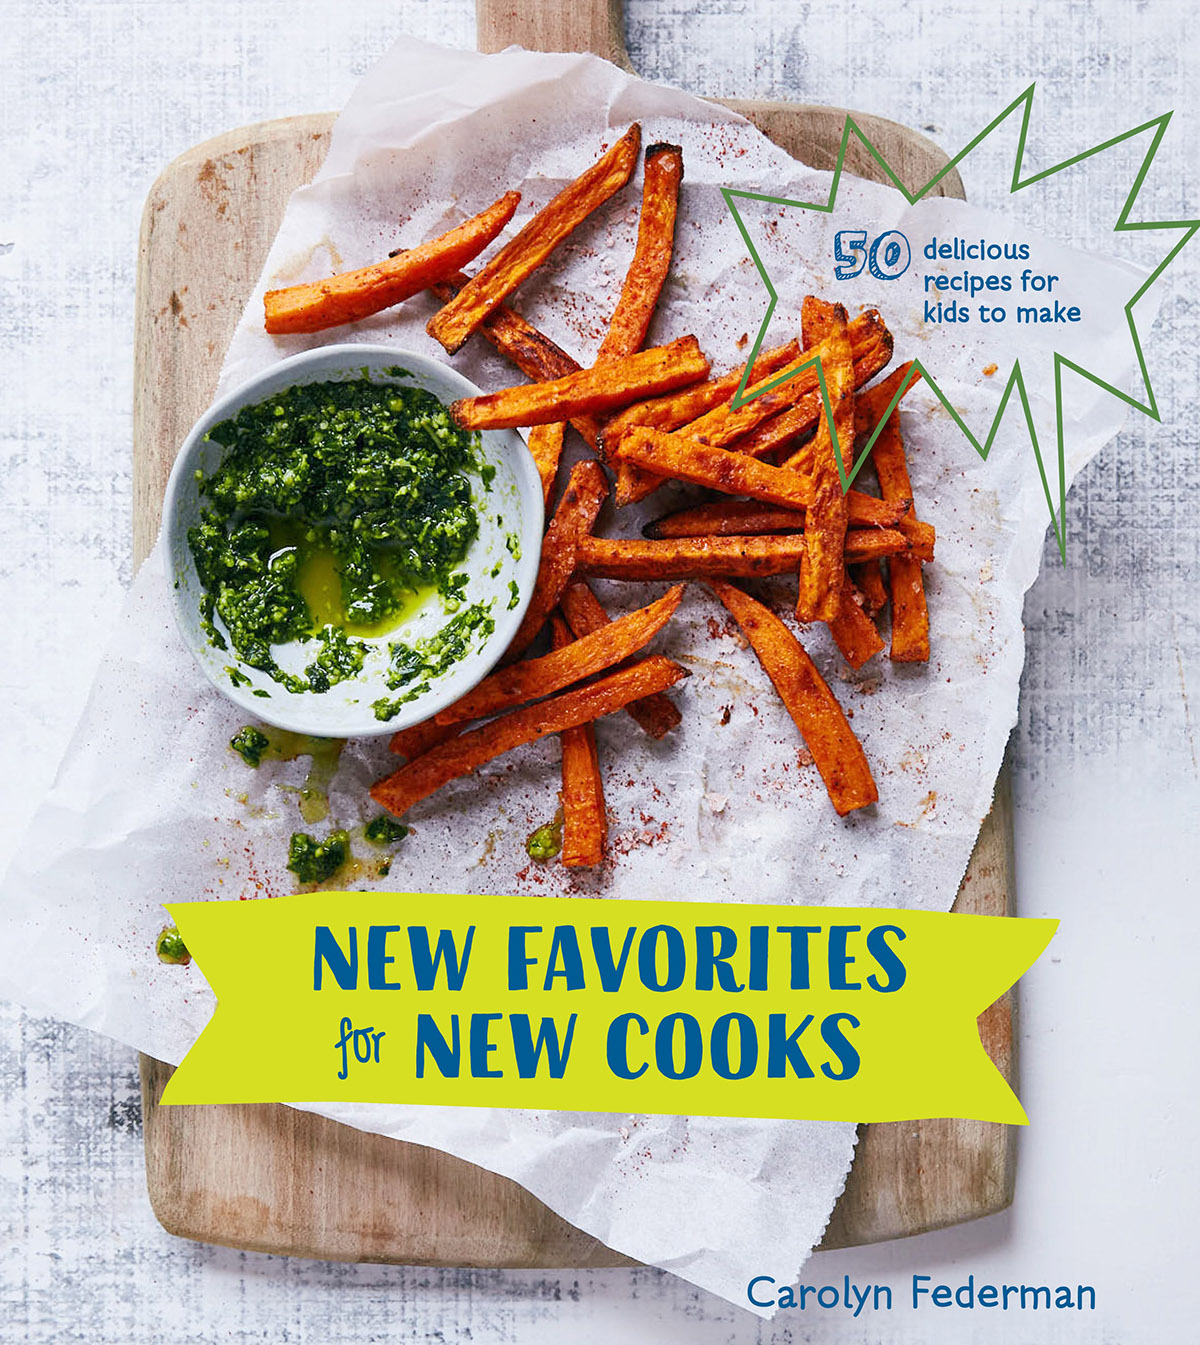 Cookbook Launch: New Favorites for New Cooks: 50 Delicious Recipes for Kids to Make by Carolyn Federman